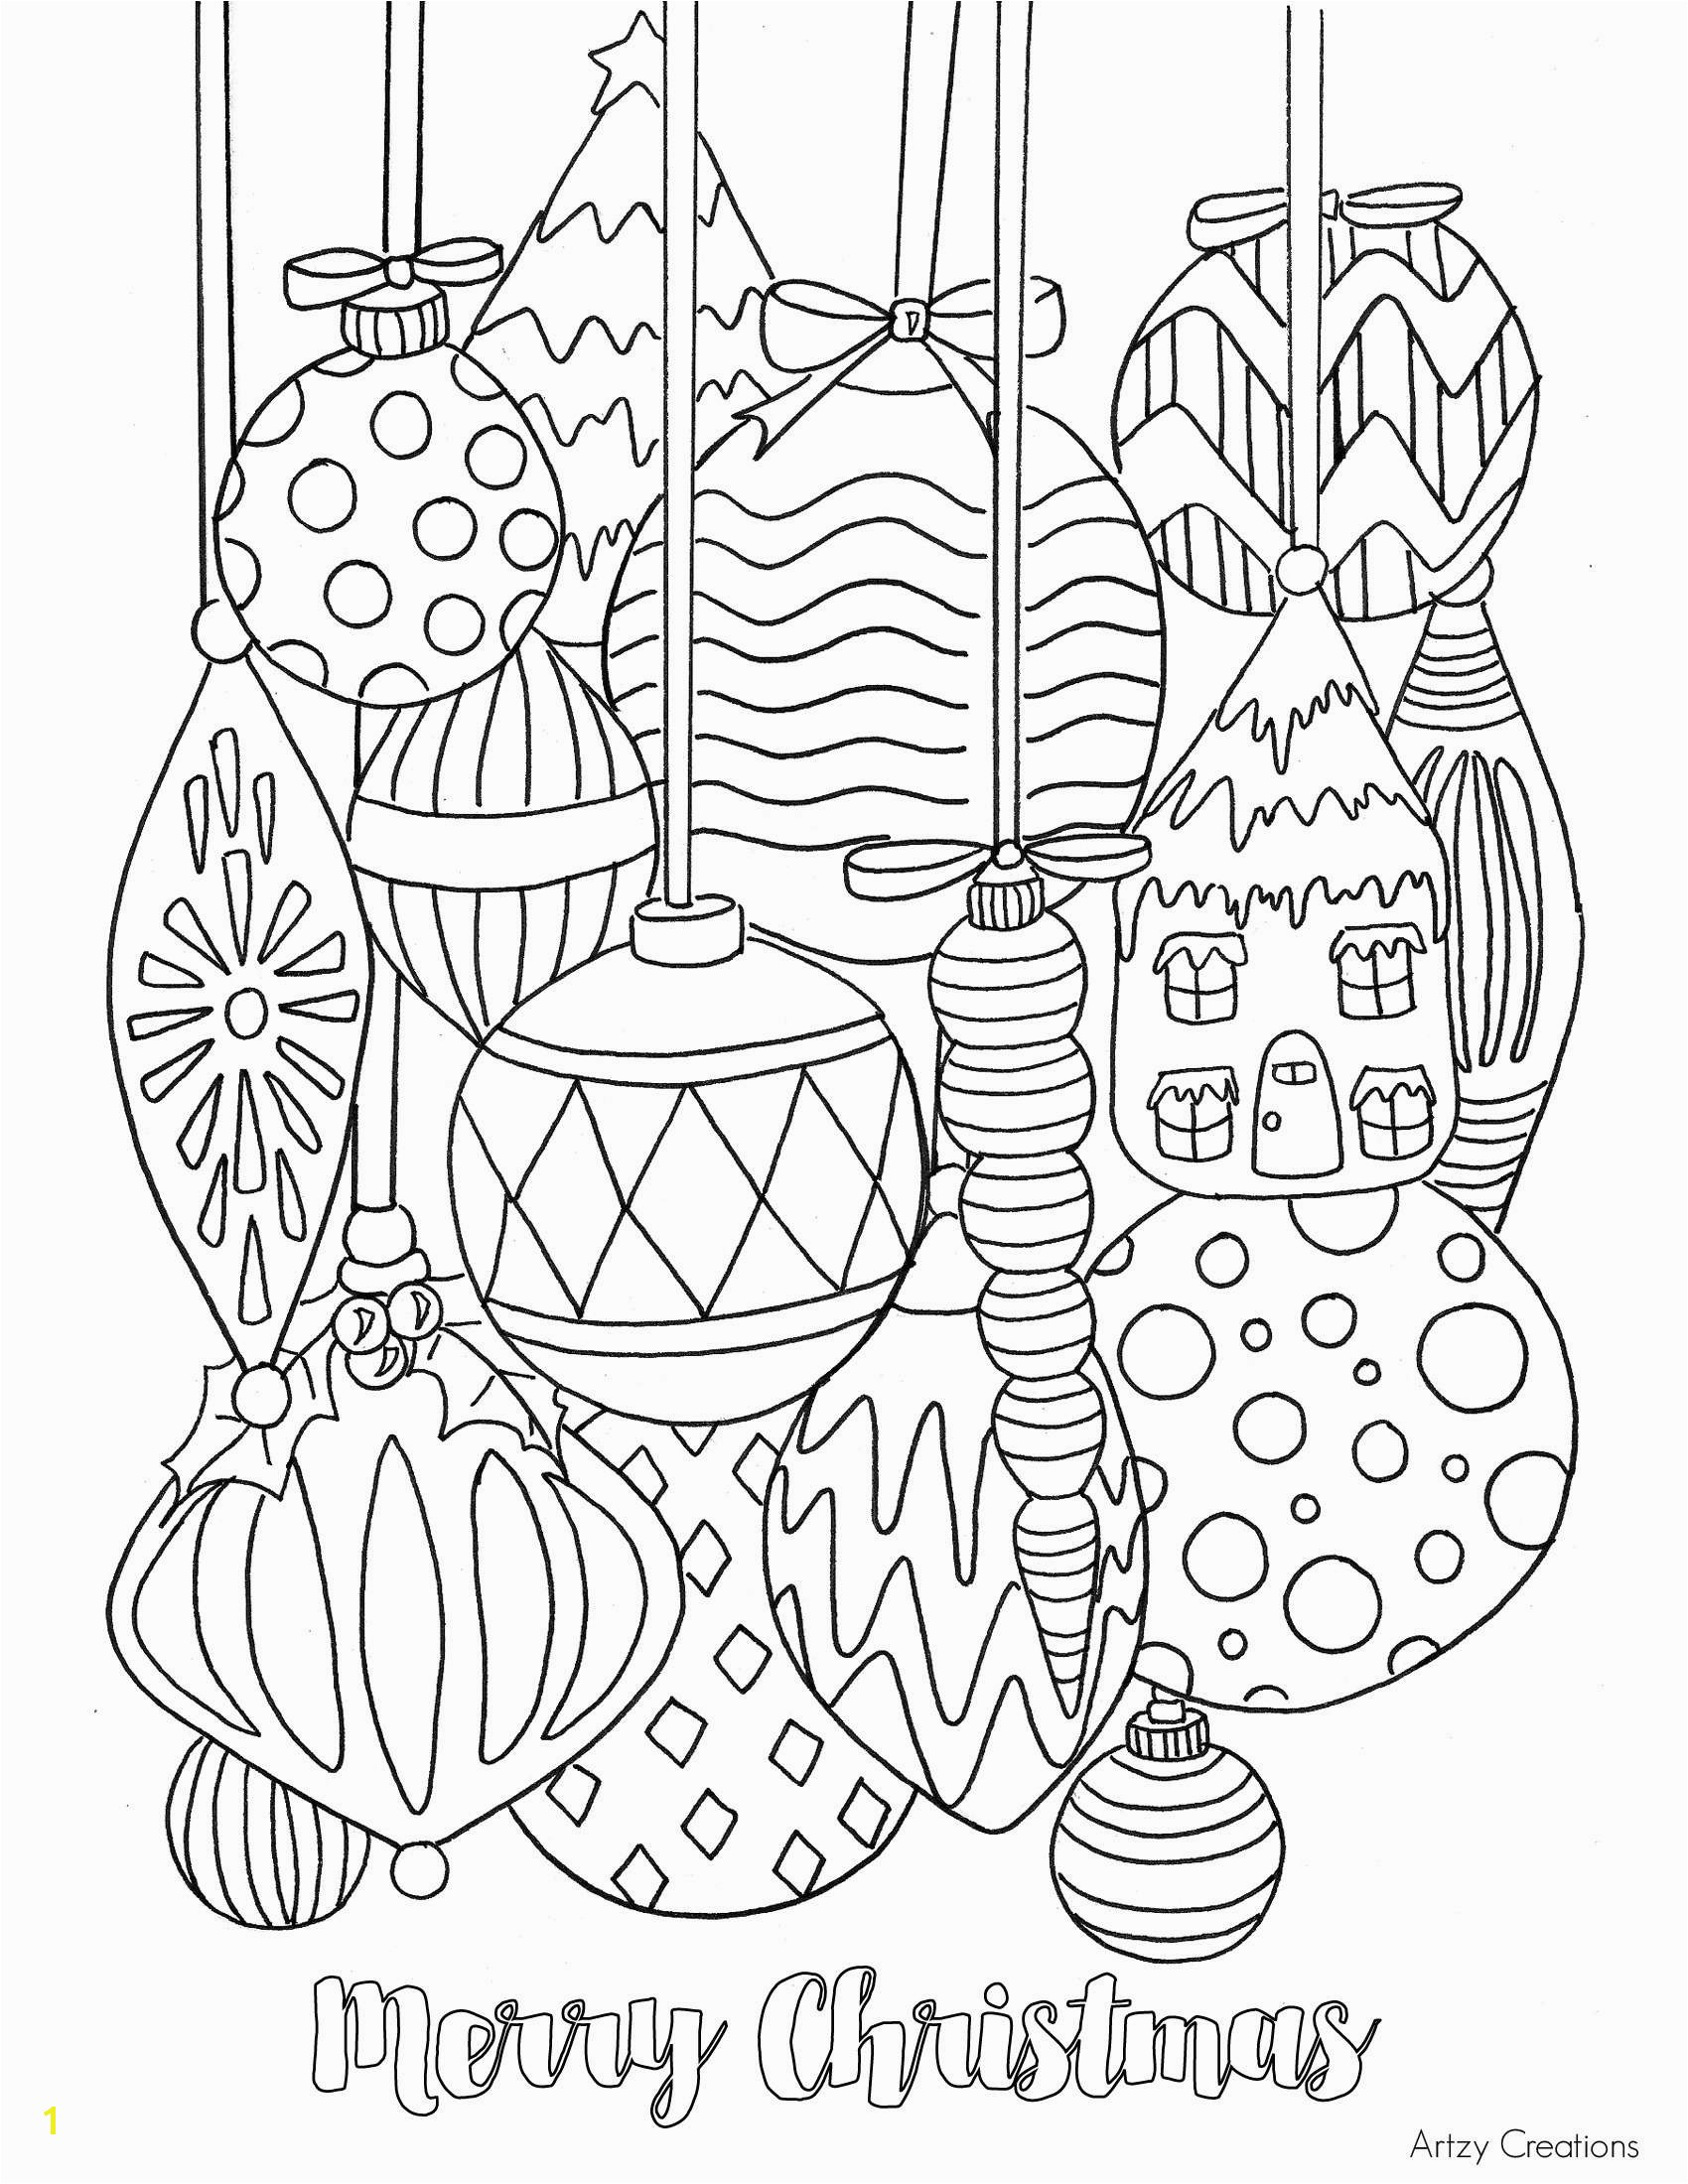 Doctor who Coloring Pages for Adults Christmas Coloring Pages for Adults Printable